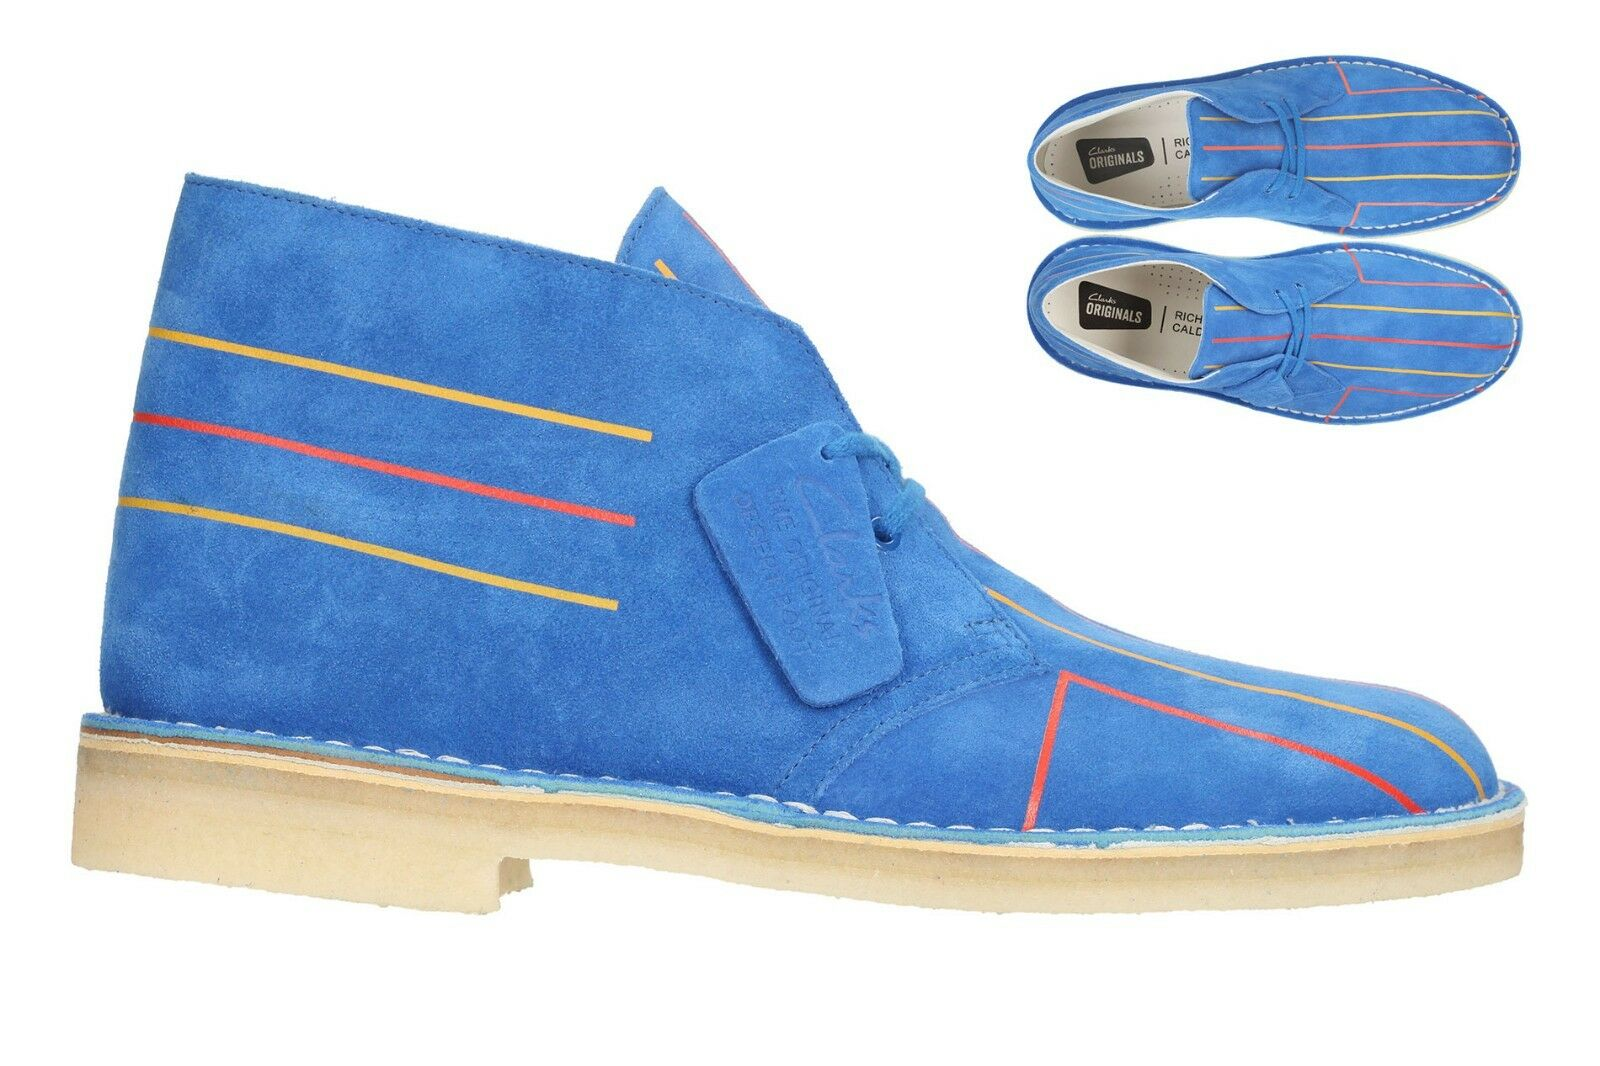 Clarks Original Uomo ** Desert Lines Electric Blue ** 65 Years ** G